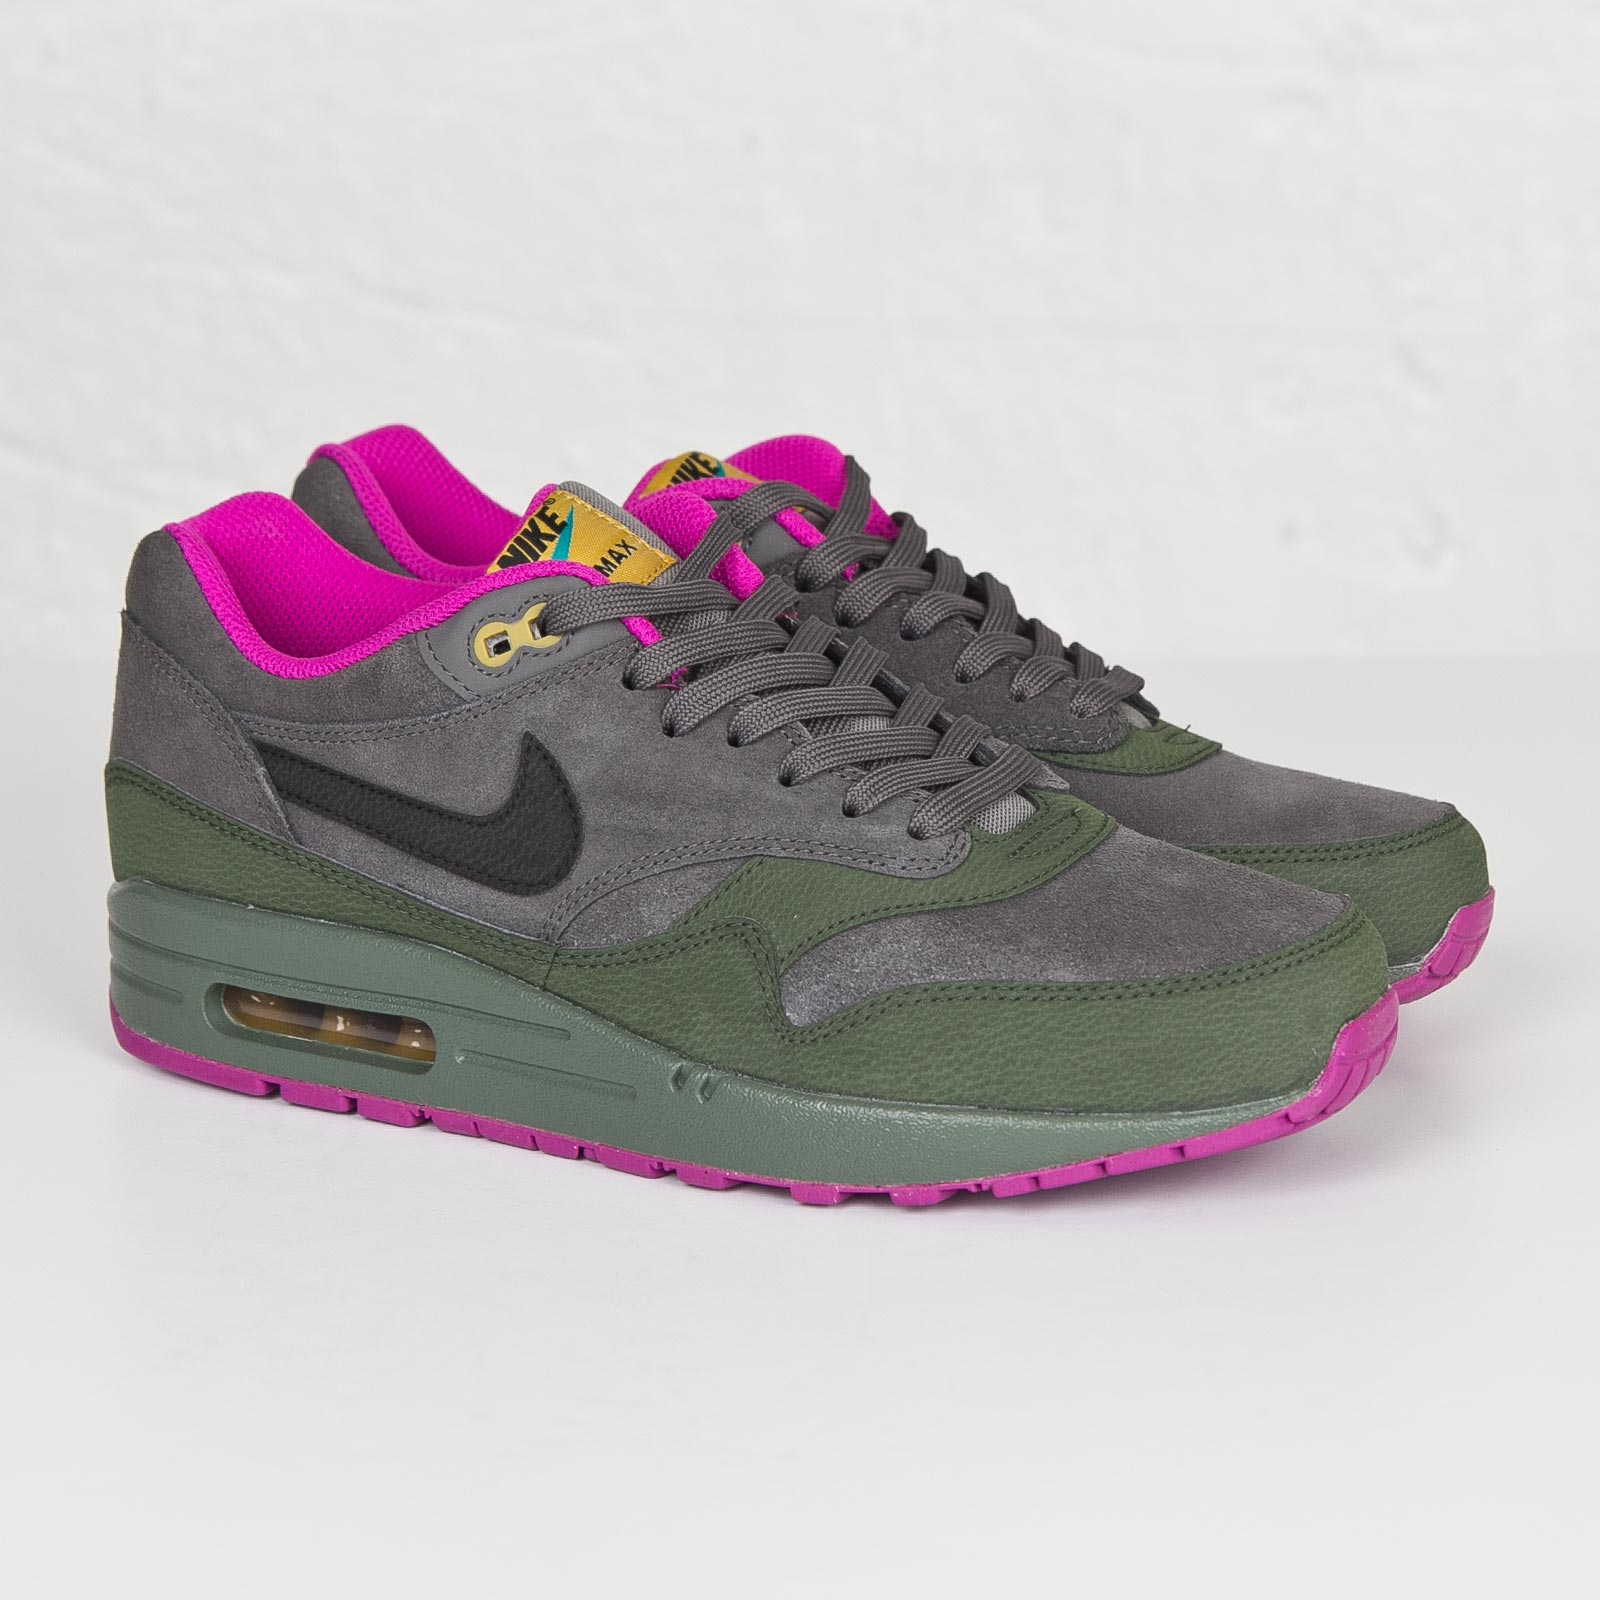 ea37350abca03 ... ltr dark pewter carbon green 654466 008 3 edbbd a7bc0  new style nike  air max 1 leather b932d 69bf2